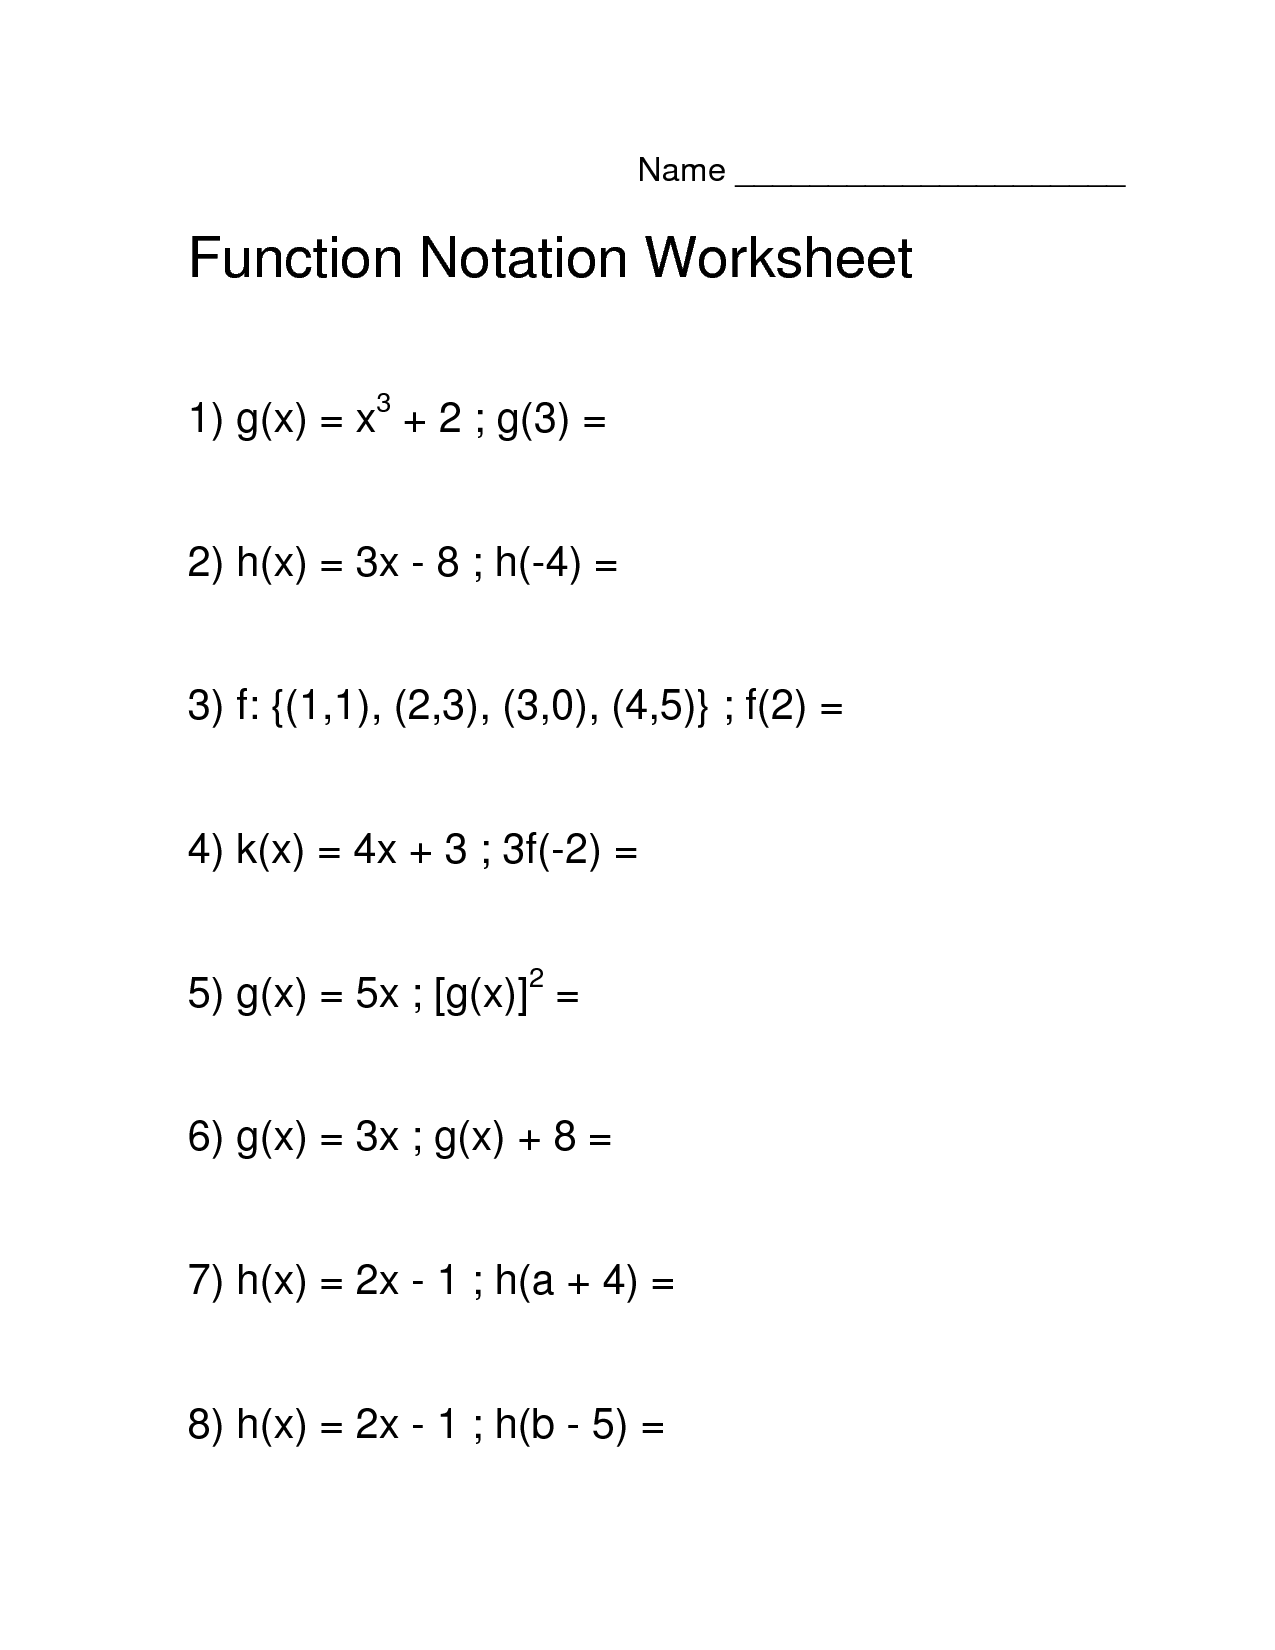 Worksheets Algebra 1 Function Notation Worksheet Answers Cheatslist Free Worksheets For Kids